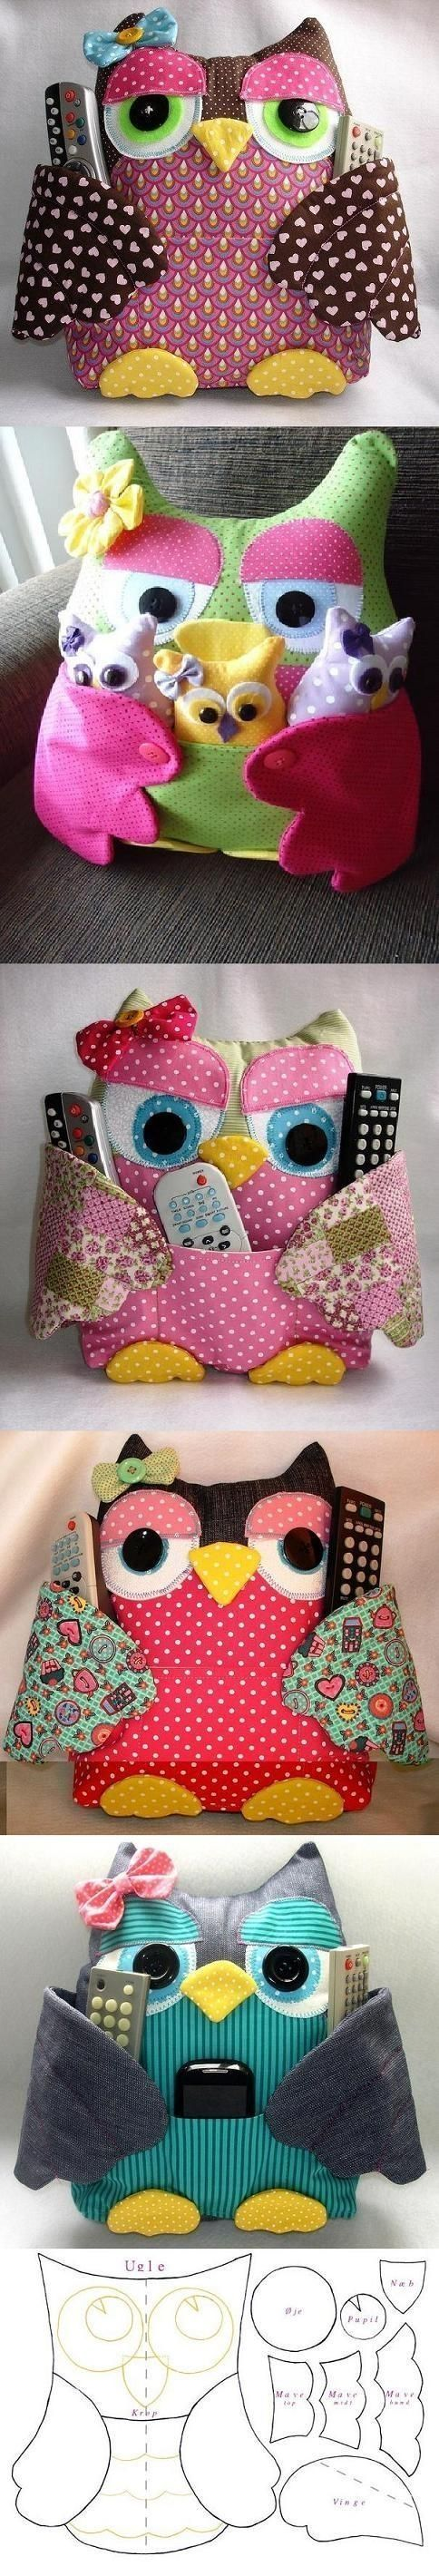 Owl Remote Control Holder Sewing Pattern